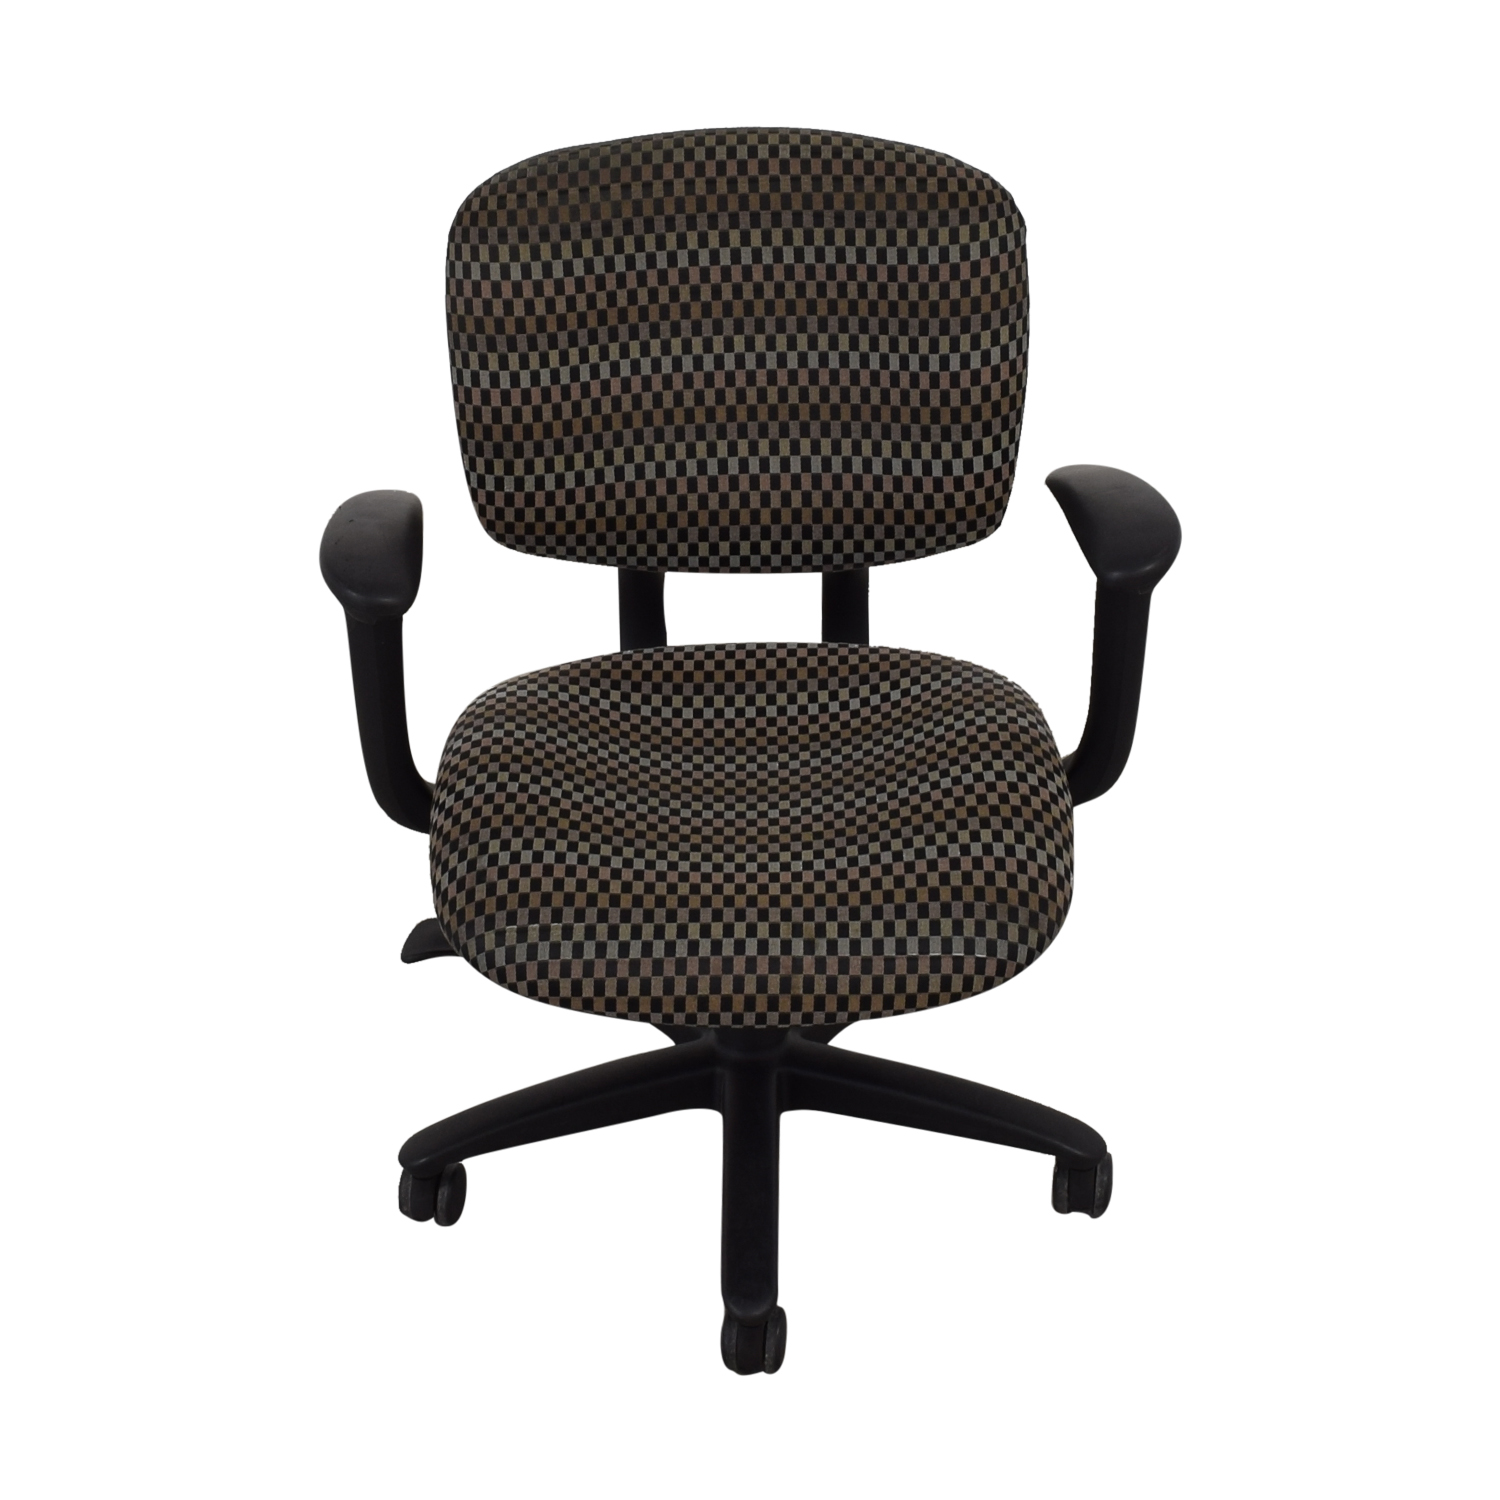 Haworth Improv Office Desk Chair sale